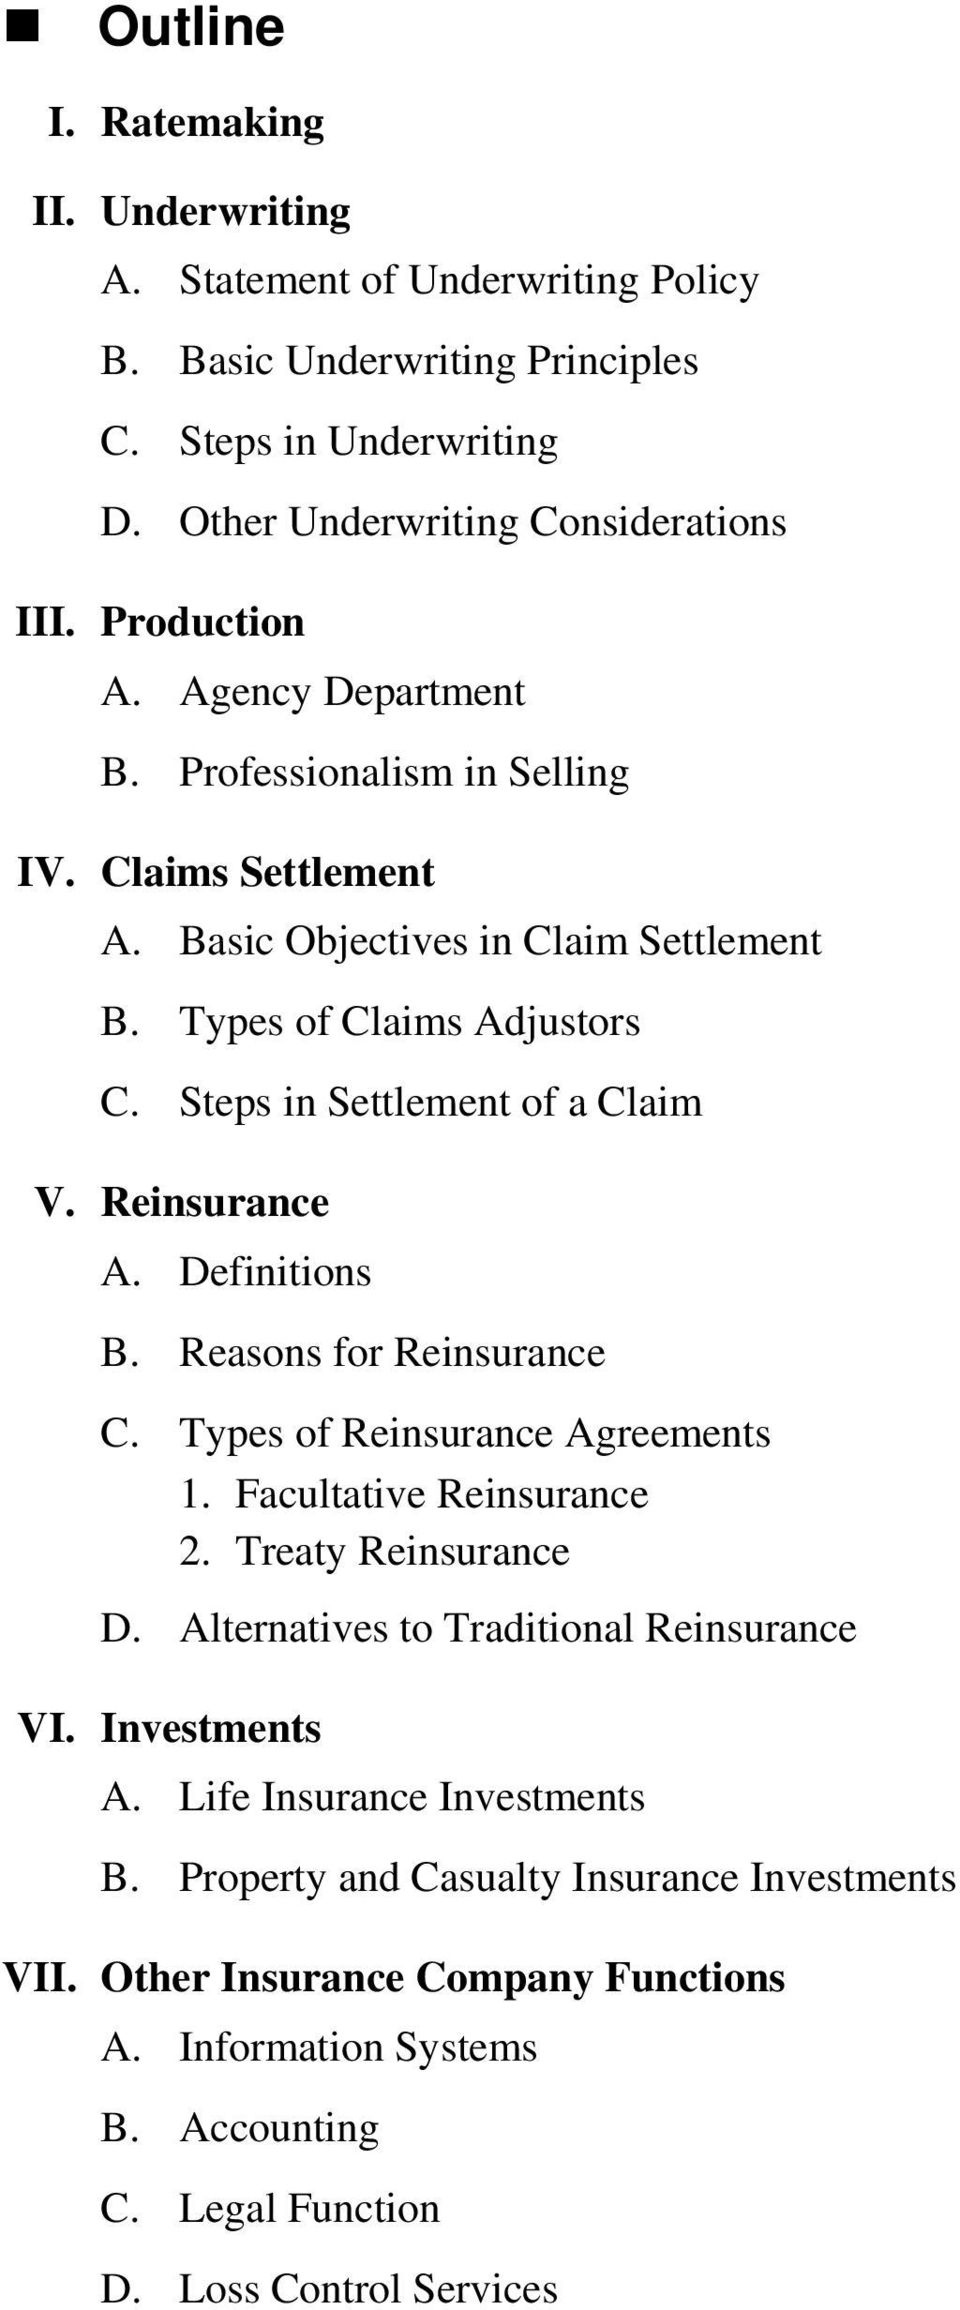 Definitions B. Reasons for Reinsurance C. Types of Reinsurance Agreements 1. Facultative Reinsurance 2. Treaty Reinsurance D. Alternatives to Traditional Reinsurance VI. Investments A.